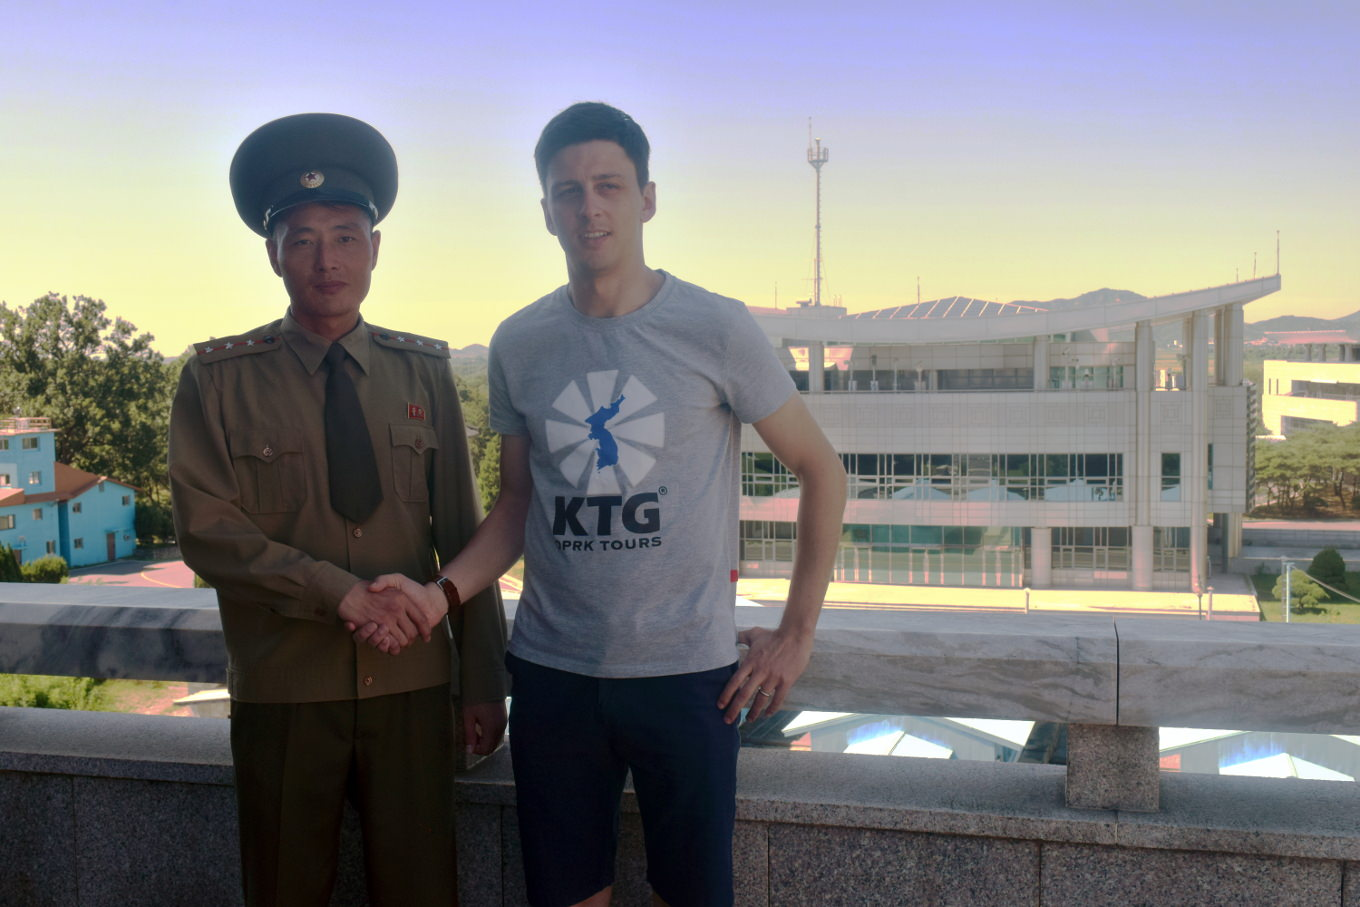 KTG staff member at the DMZ (Panmunjom) with a North Korean soldier, (DPRK)